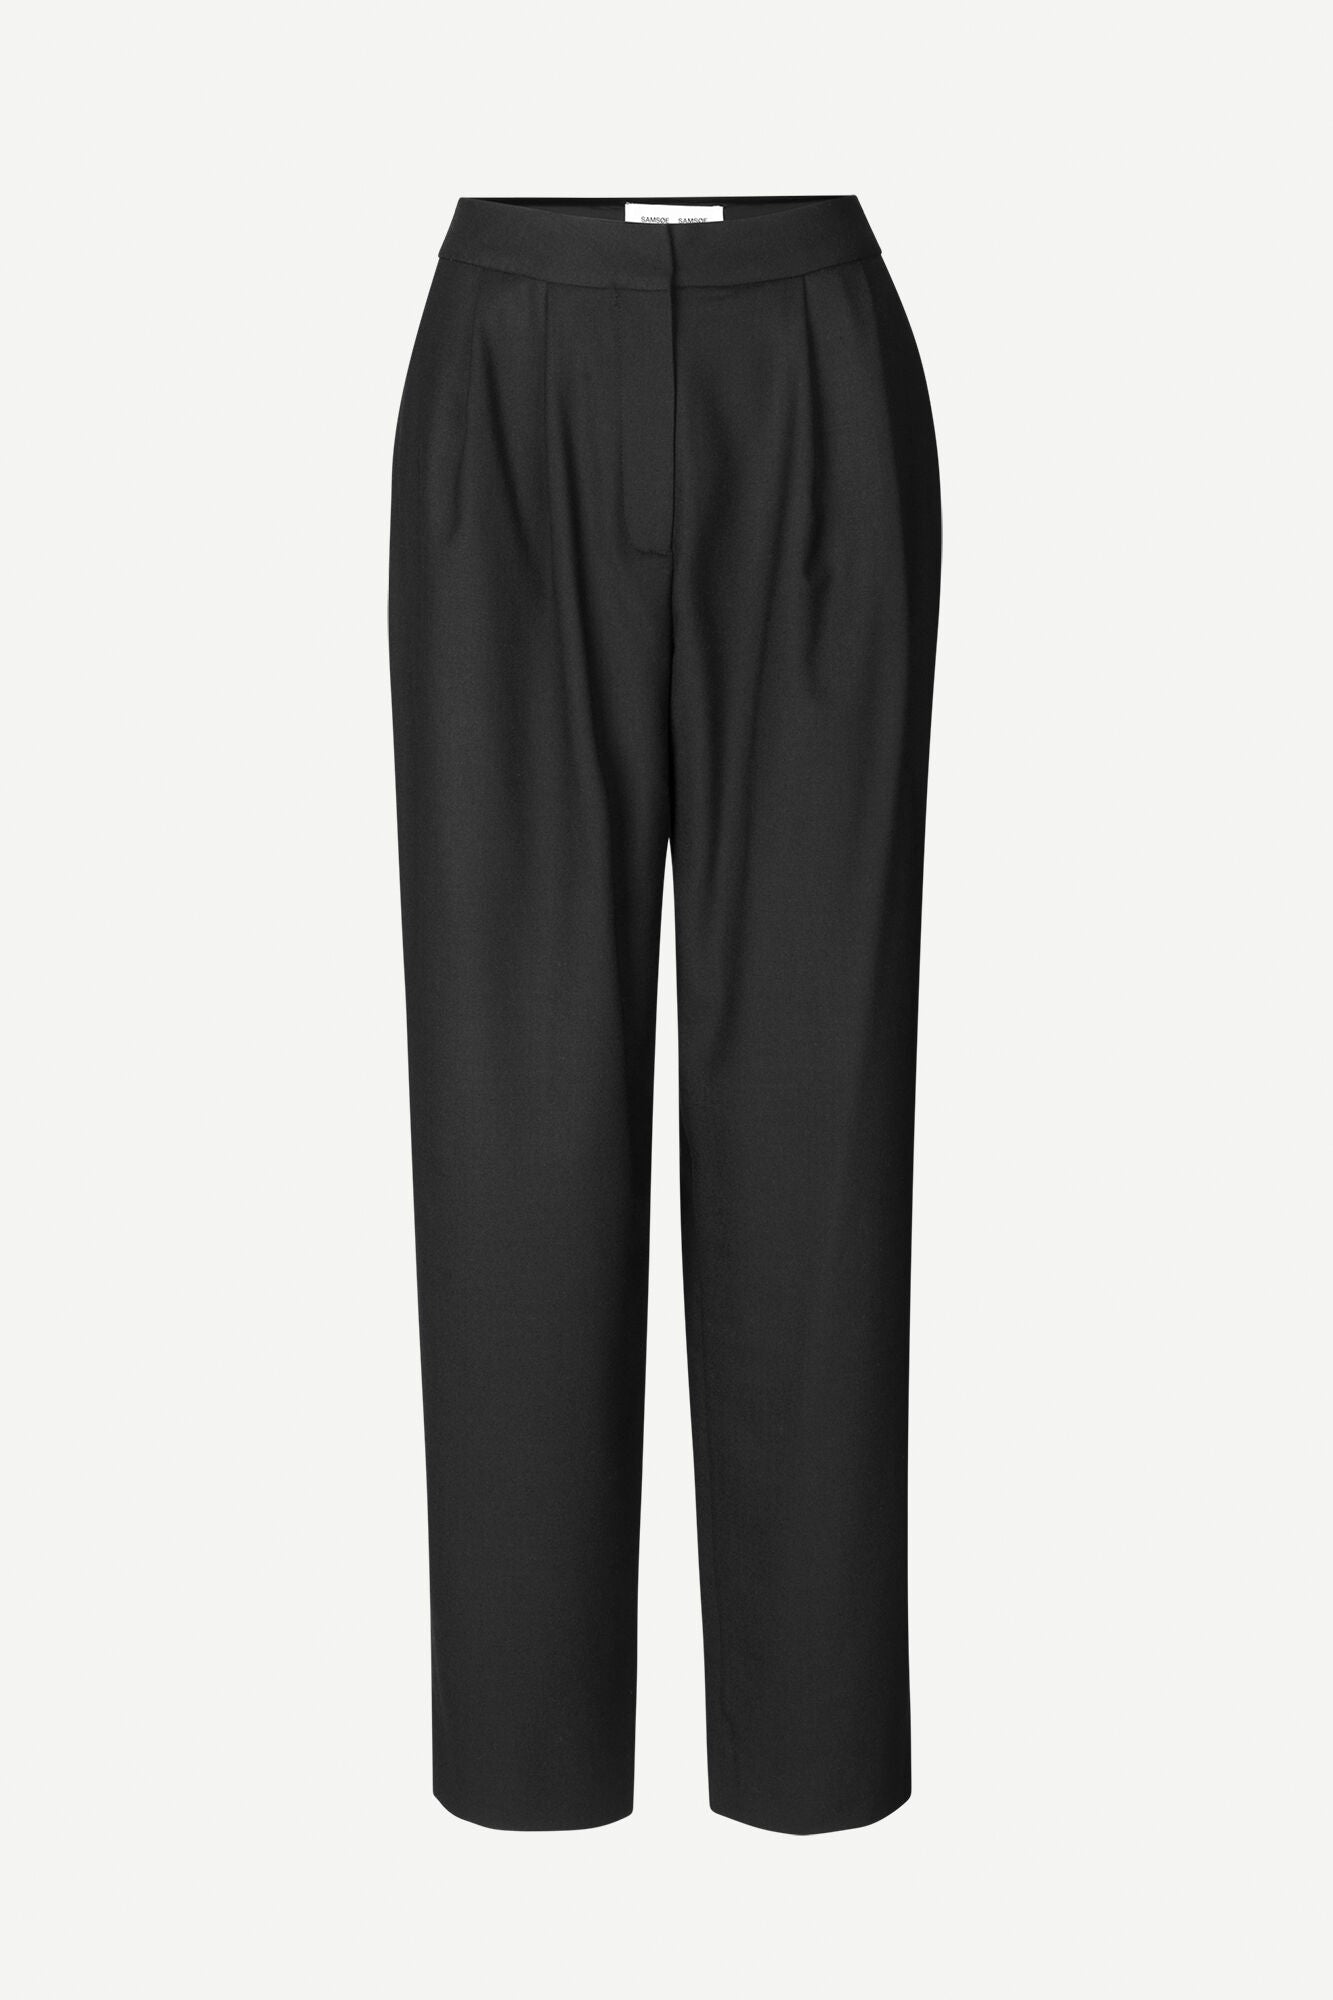 JAKARA TROUSERS IN BLACK